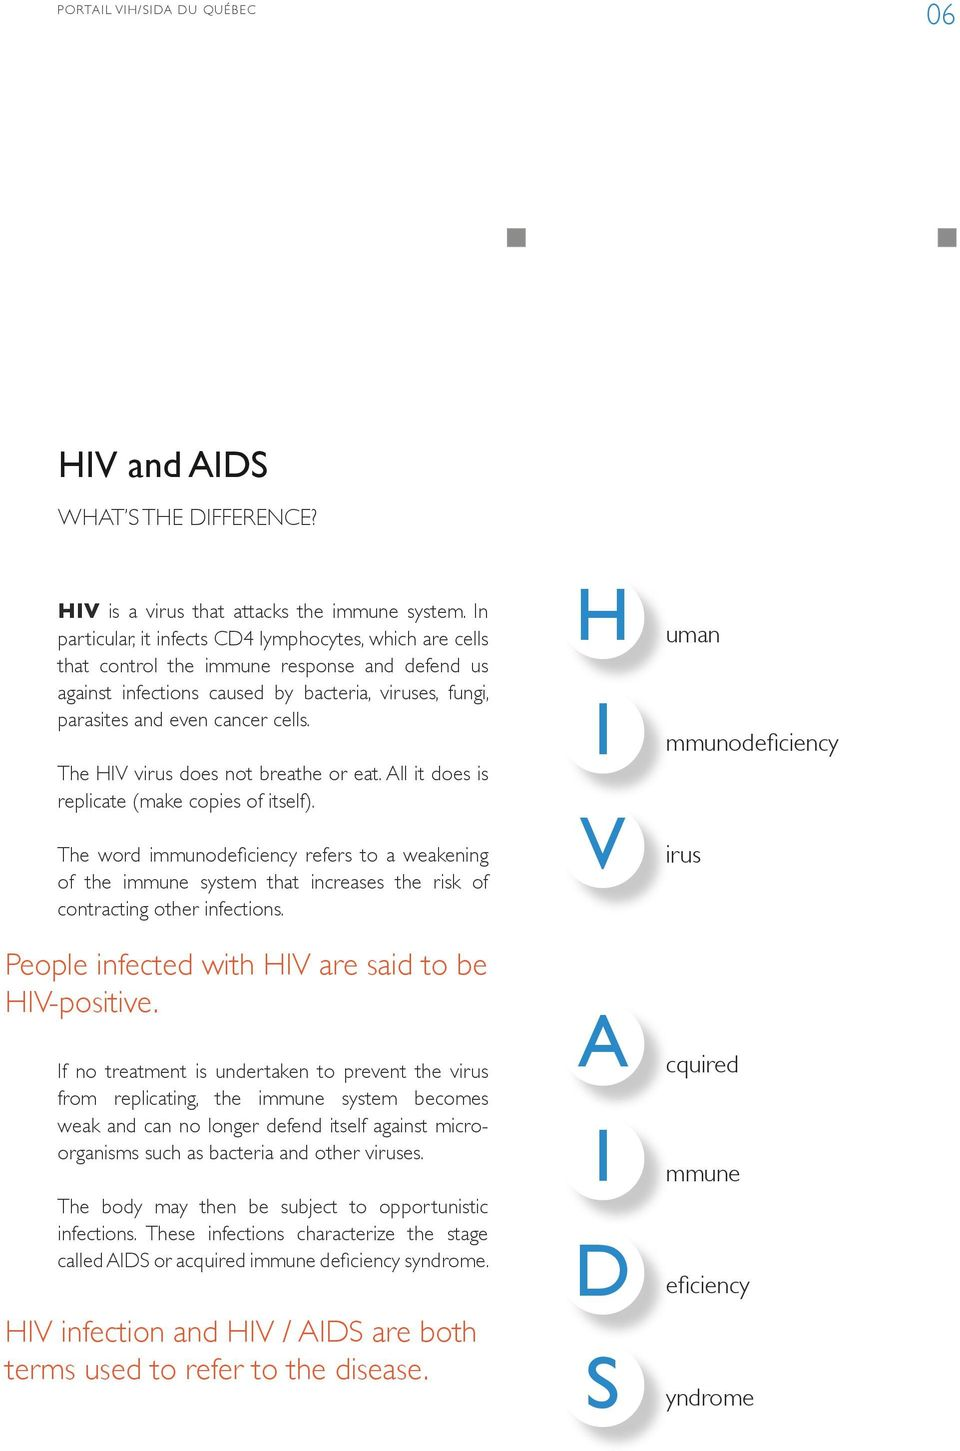 The HIV virus does not breathe or eat. All it does is replicate (make copies of itself).